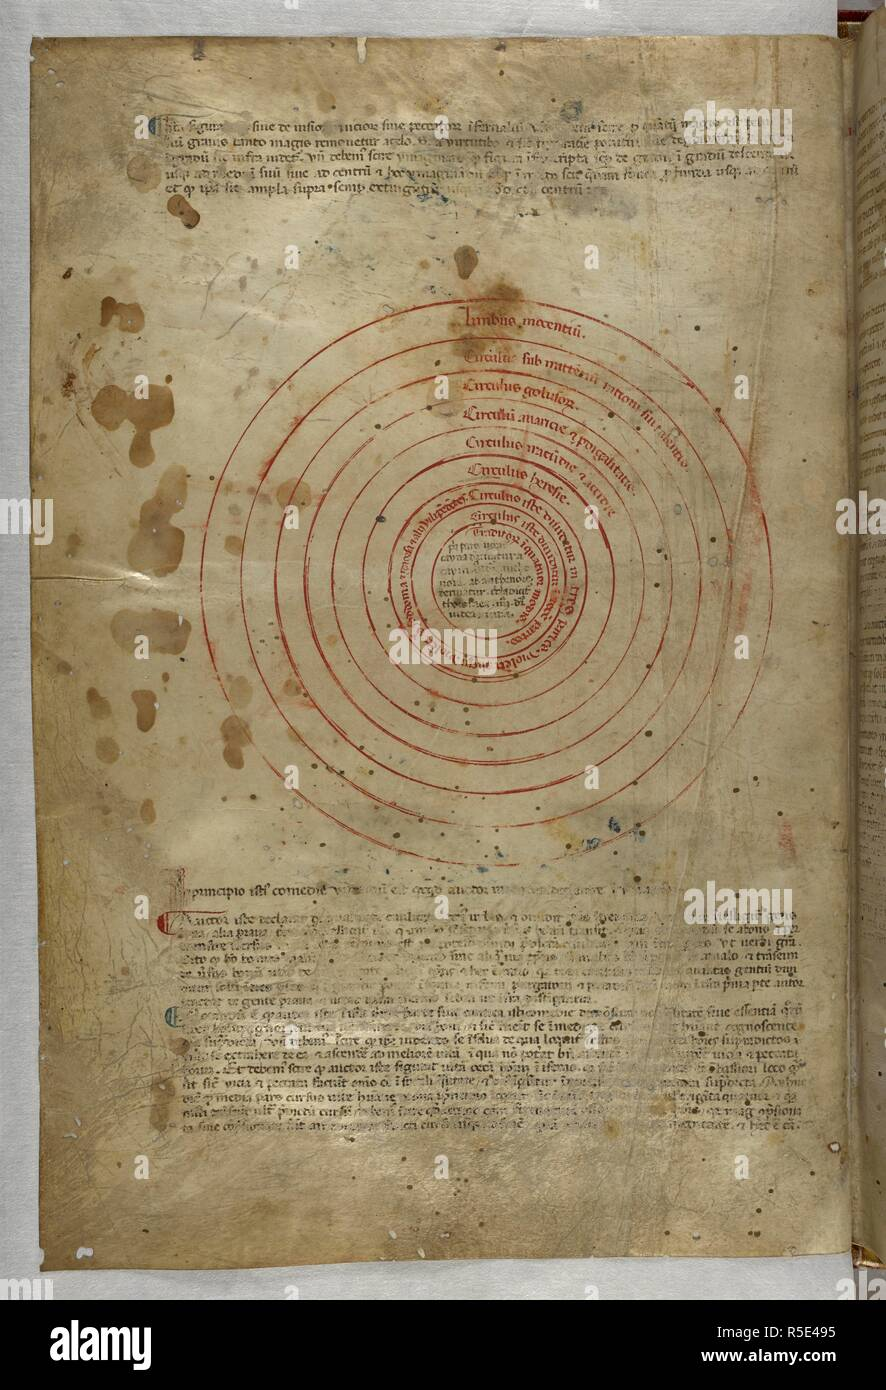 Inferno: Circular diagram of the spheres of Hell. . Dante Alighieri, Divina Commedia ( The Divine Comedy ), with a commentary in Latin. 1st half of the 14th century. Source: Egerton 943, f.2v. Language: Italian, Latin. - Stock Image